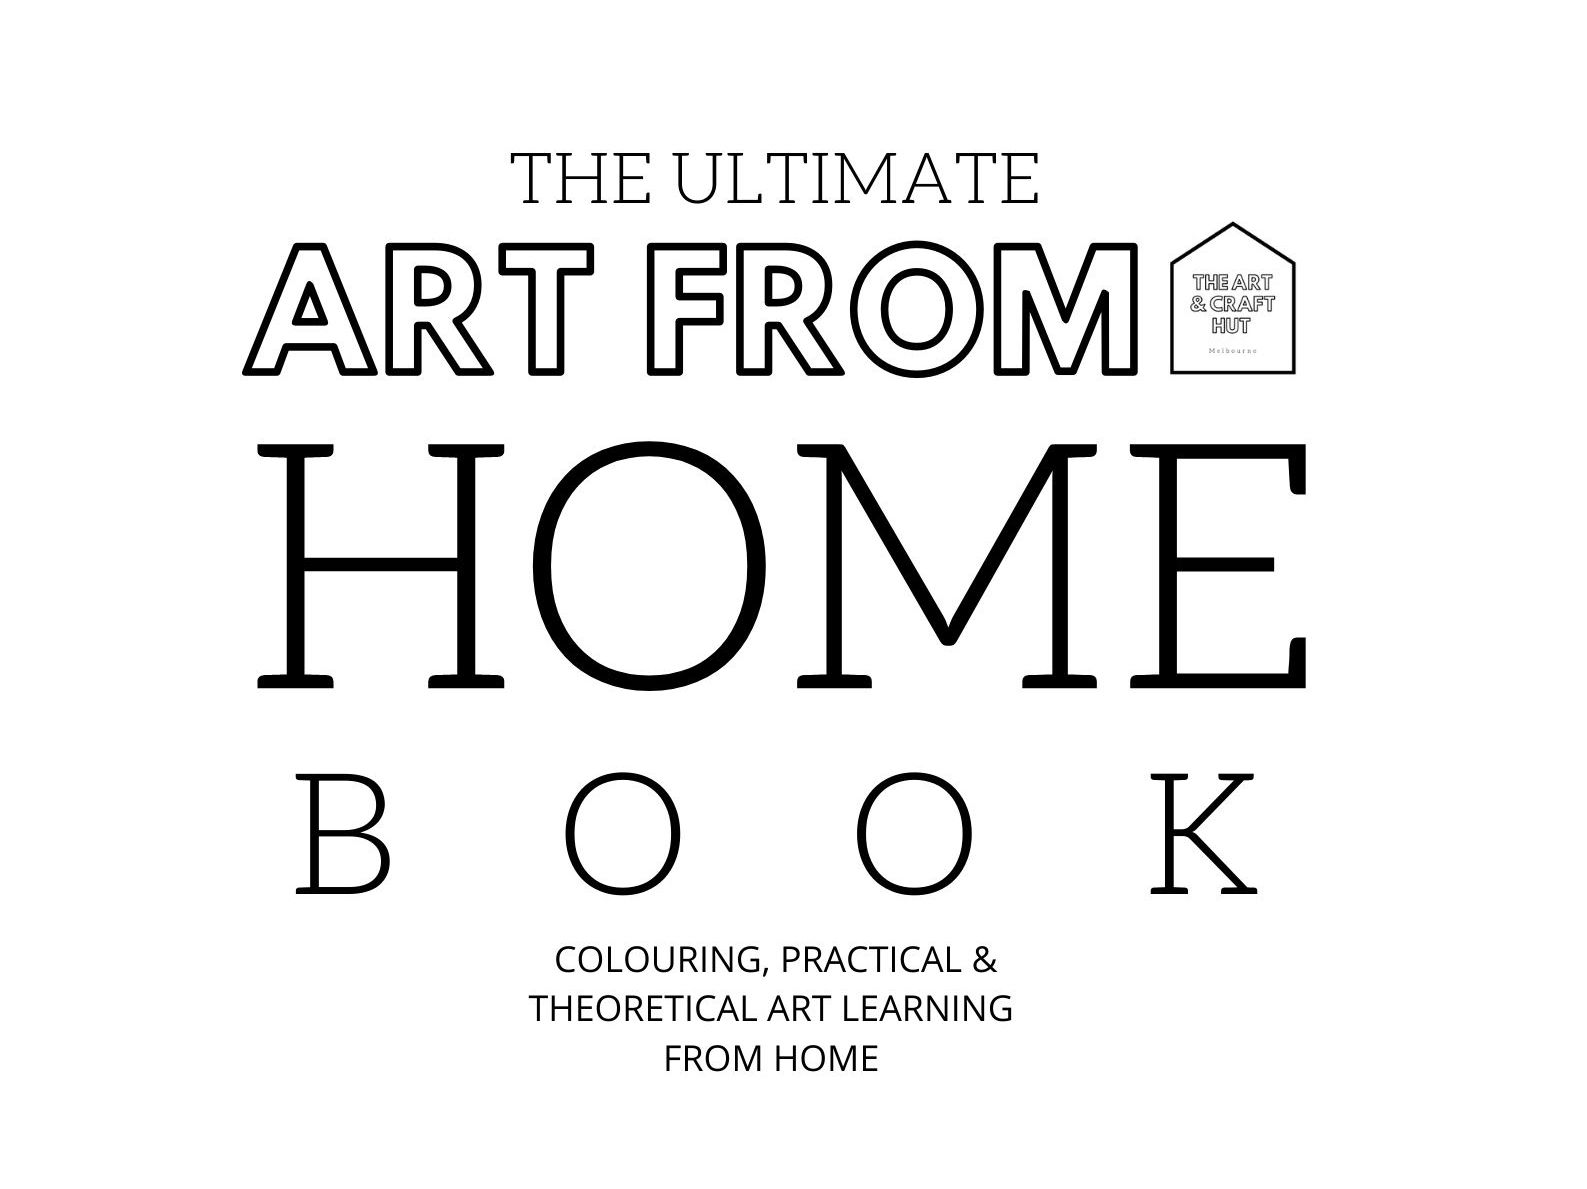 68 Page Ultimate Art From Home Book | Colouring, Practical & Theoretical Art Learning  From home